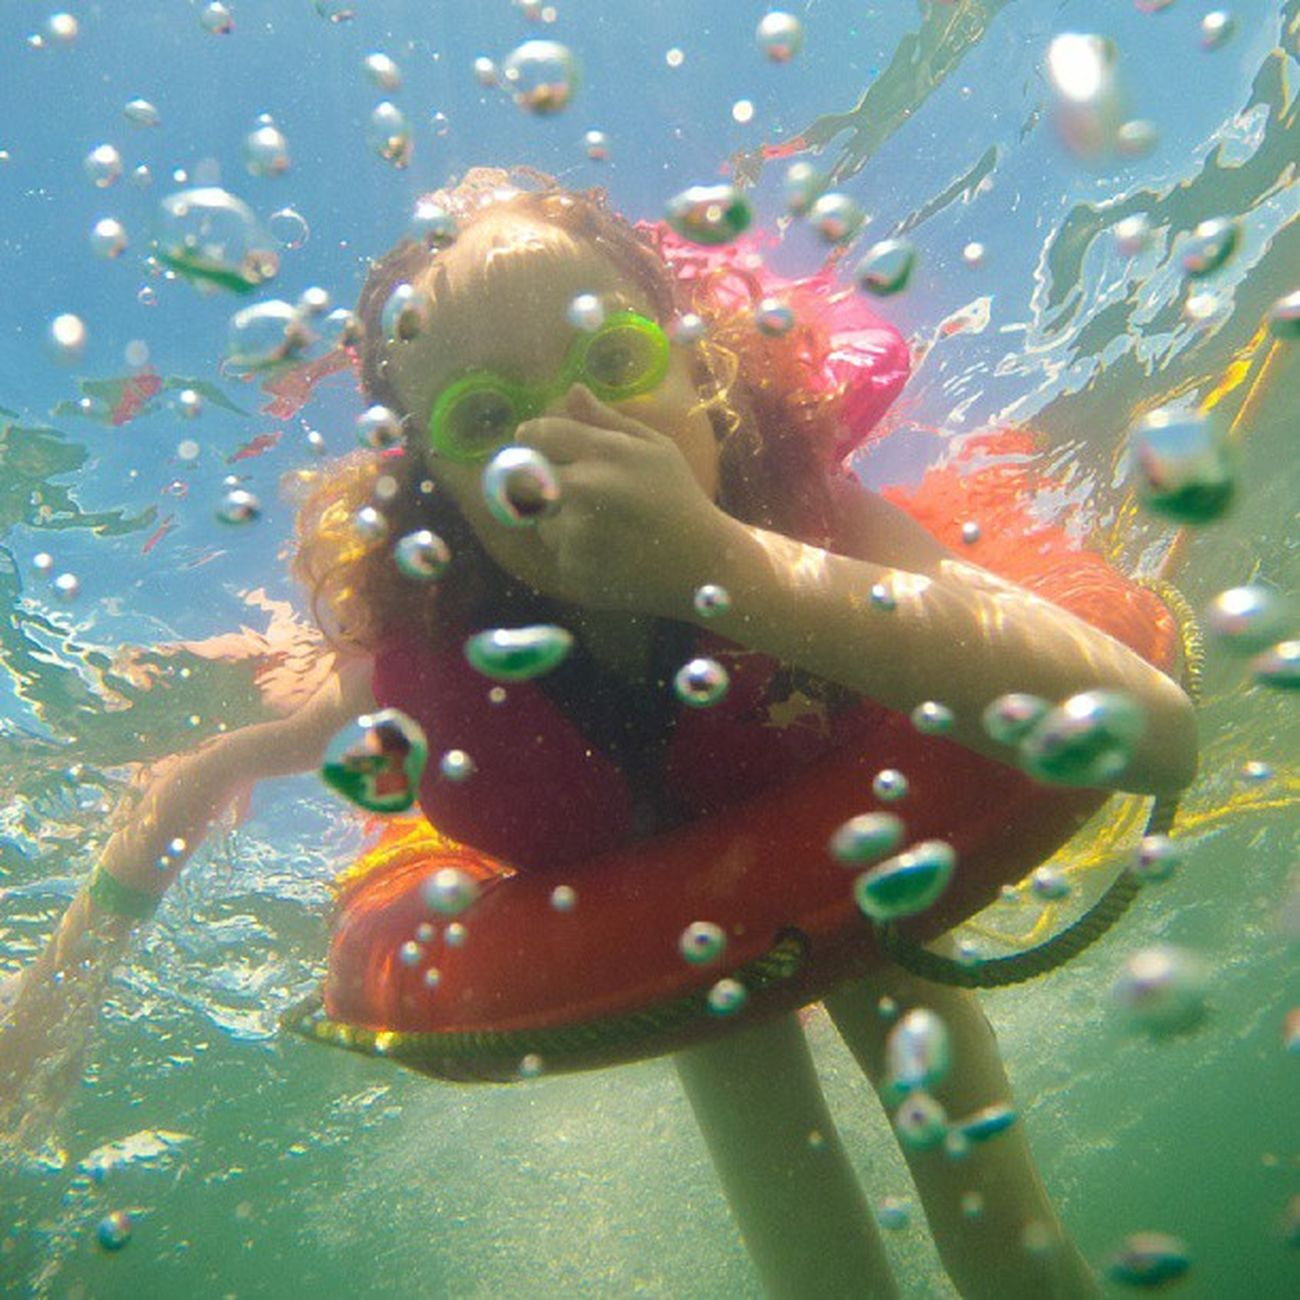 A WaterCreature amongst the Bubbles . Gopro Igersottawa . Back from an amazing weekend. - lots of photos to come.